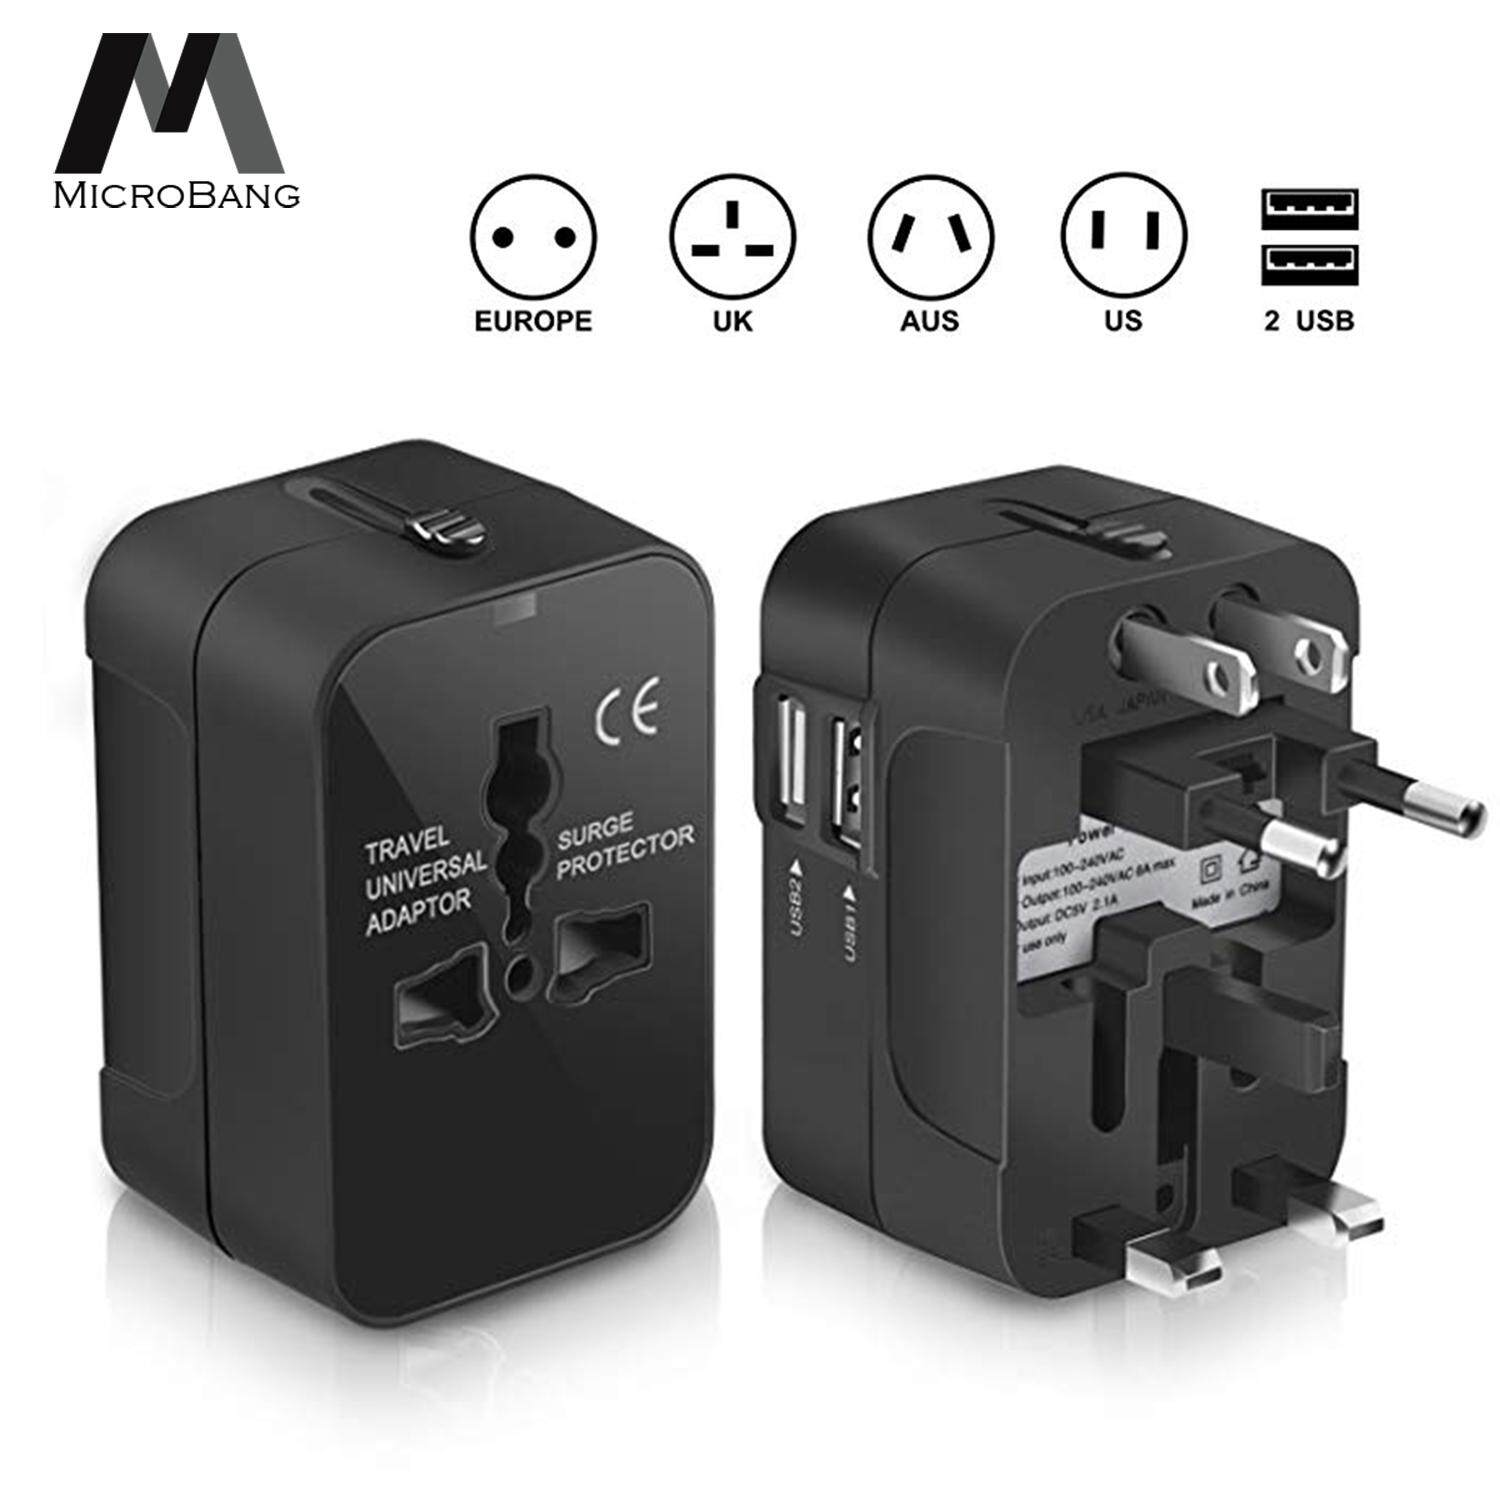 MicroBang Multi-Outlets Travel Adapter, All in One International Universal Wall Power Travel Adaptor